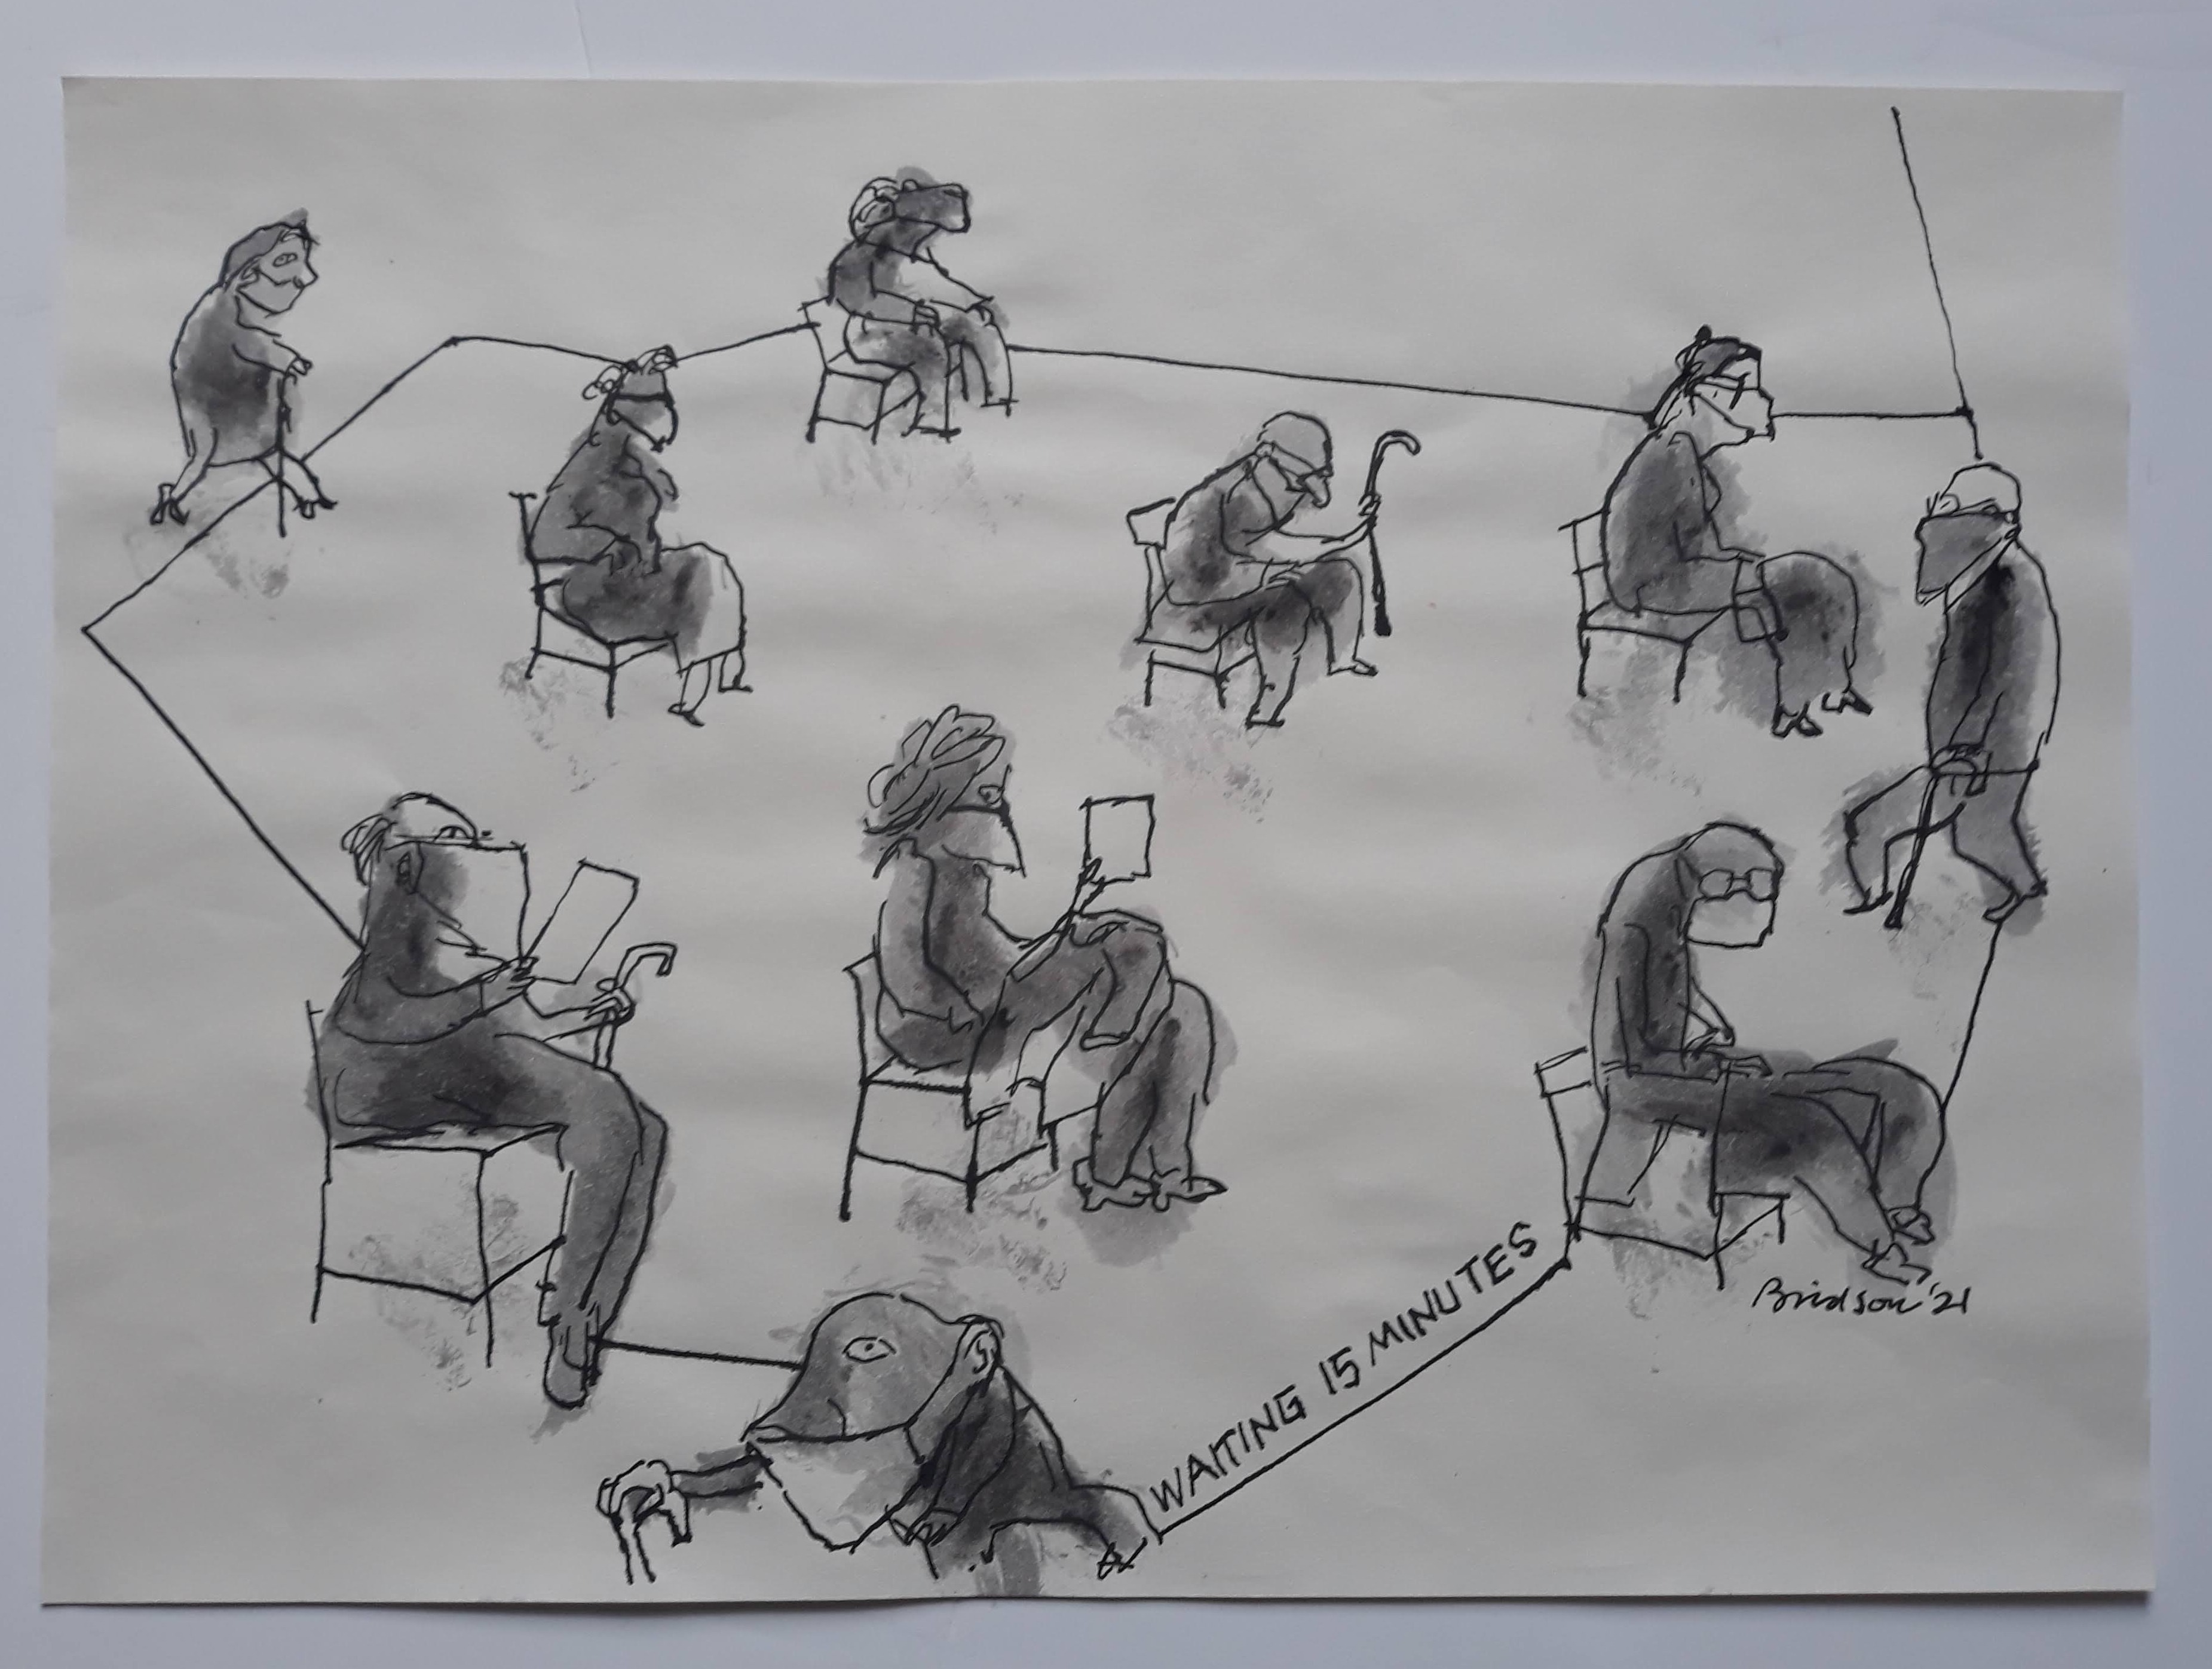 'Waiting 15 minutes in  out',  2021, 30 cm x 41 cm